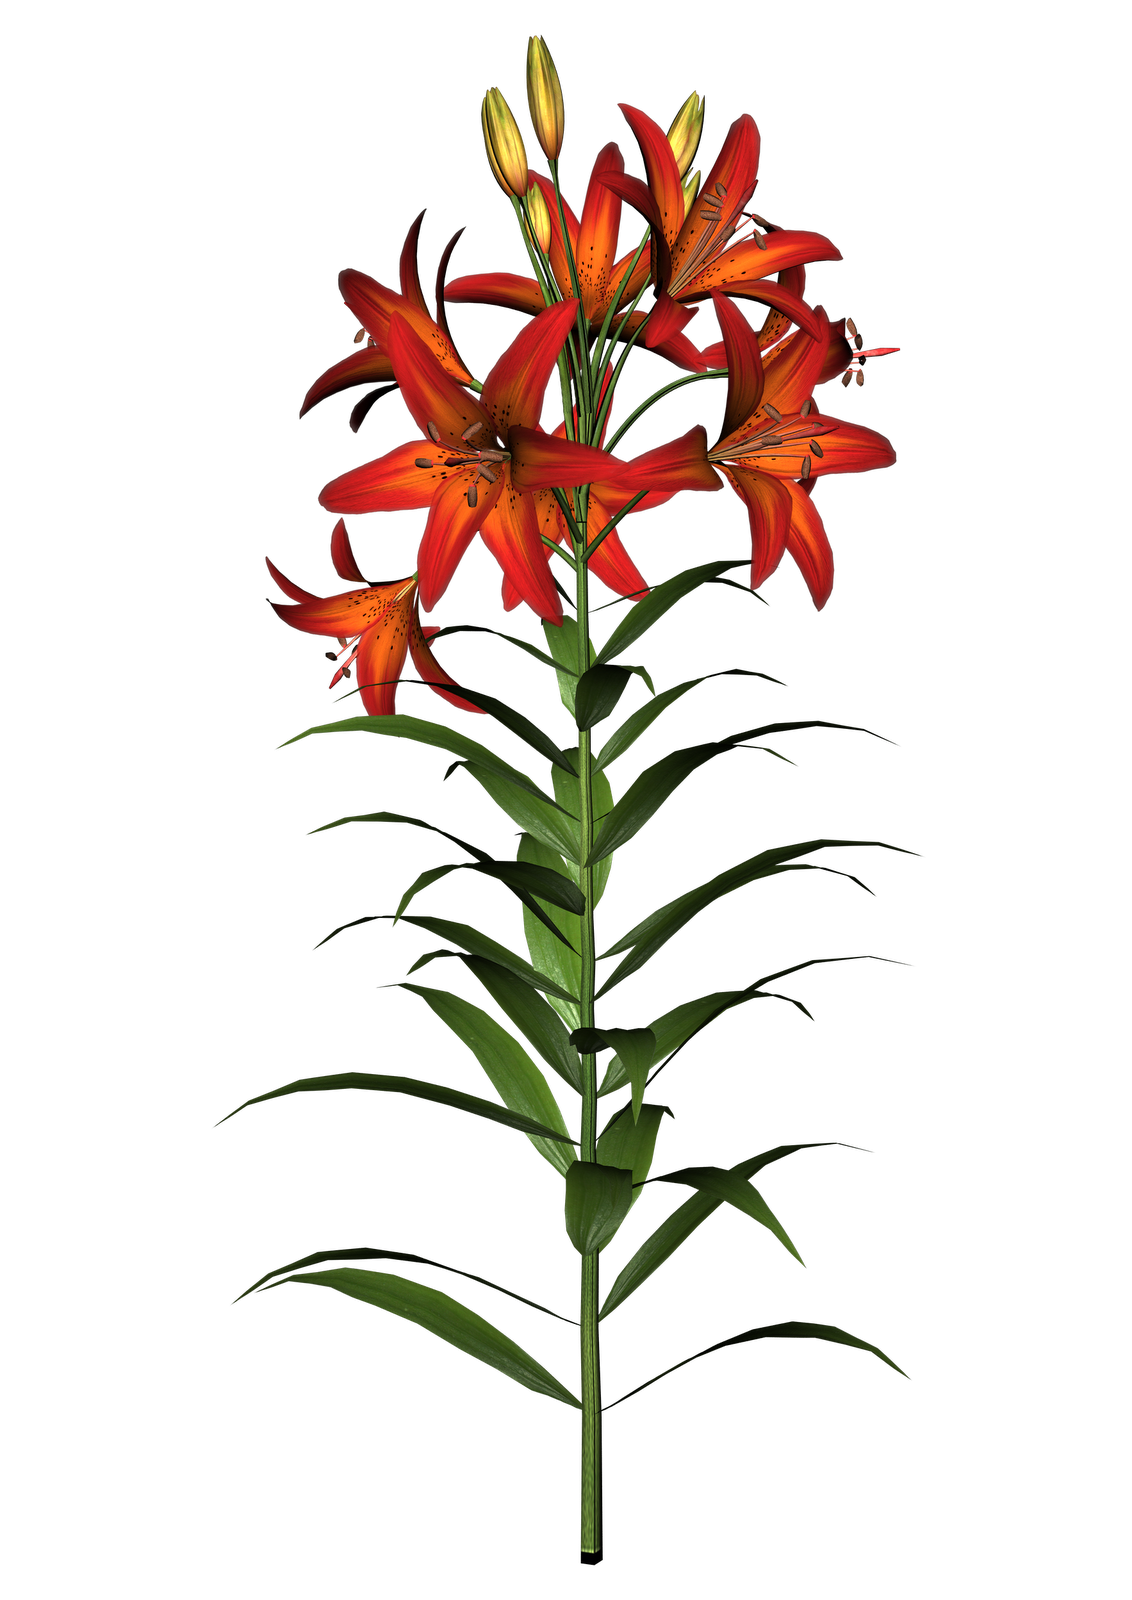 clipart royalty free download Lily Flowers Clipart at GetDrawings